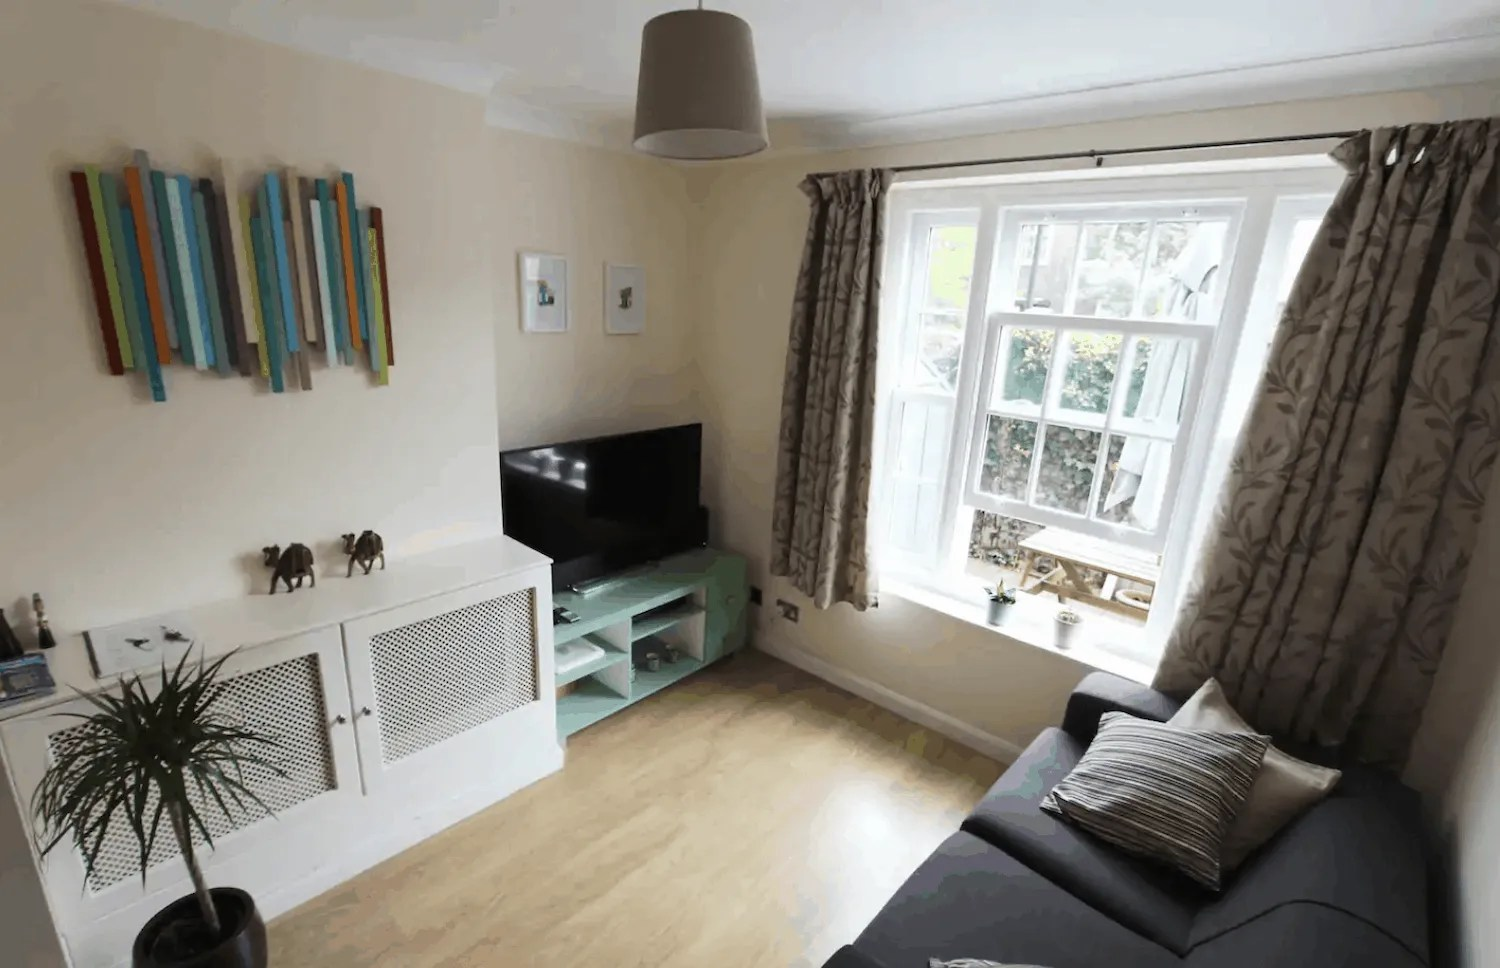 Budget London Airbnbs - Lambeth 2br Sitting Room